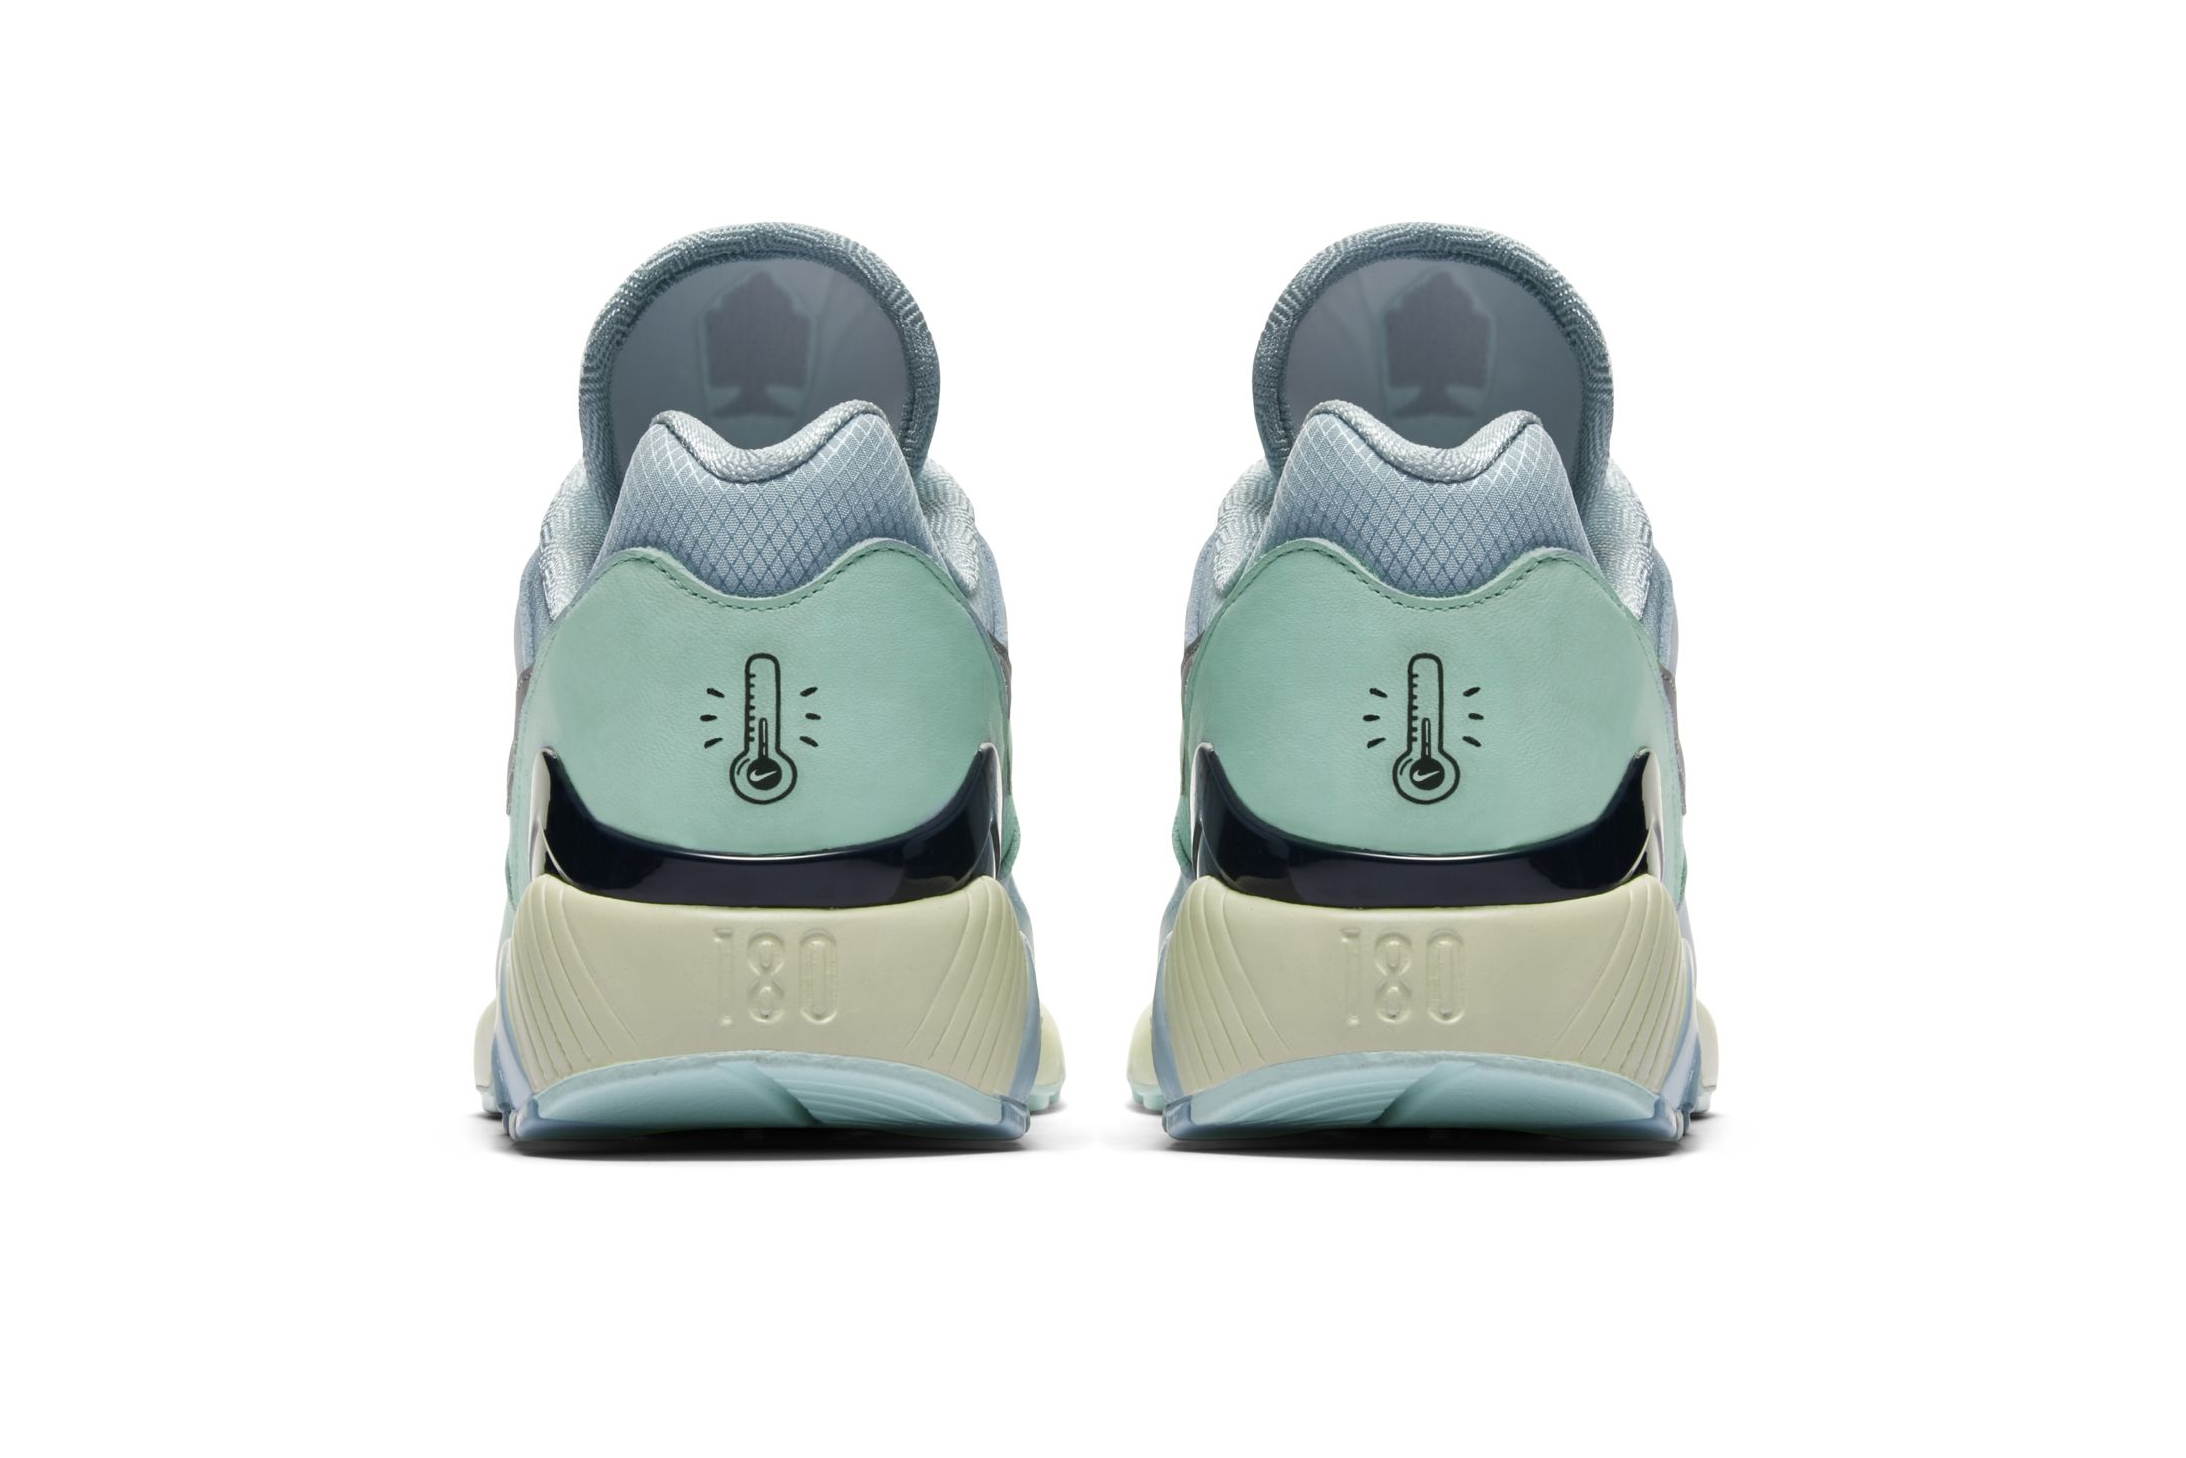 Nike Air Max 180 Ice Ocean Bliss Blue Size UK 12 EUR 47.5 US 13 Av3734 400